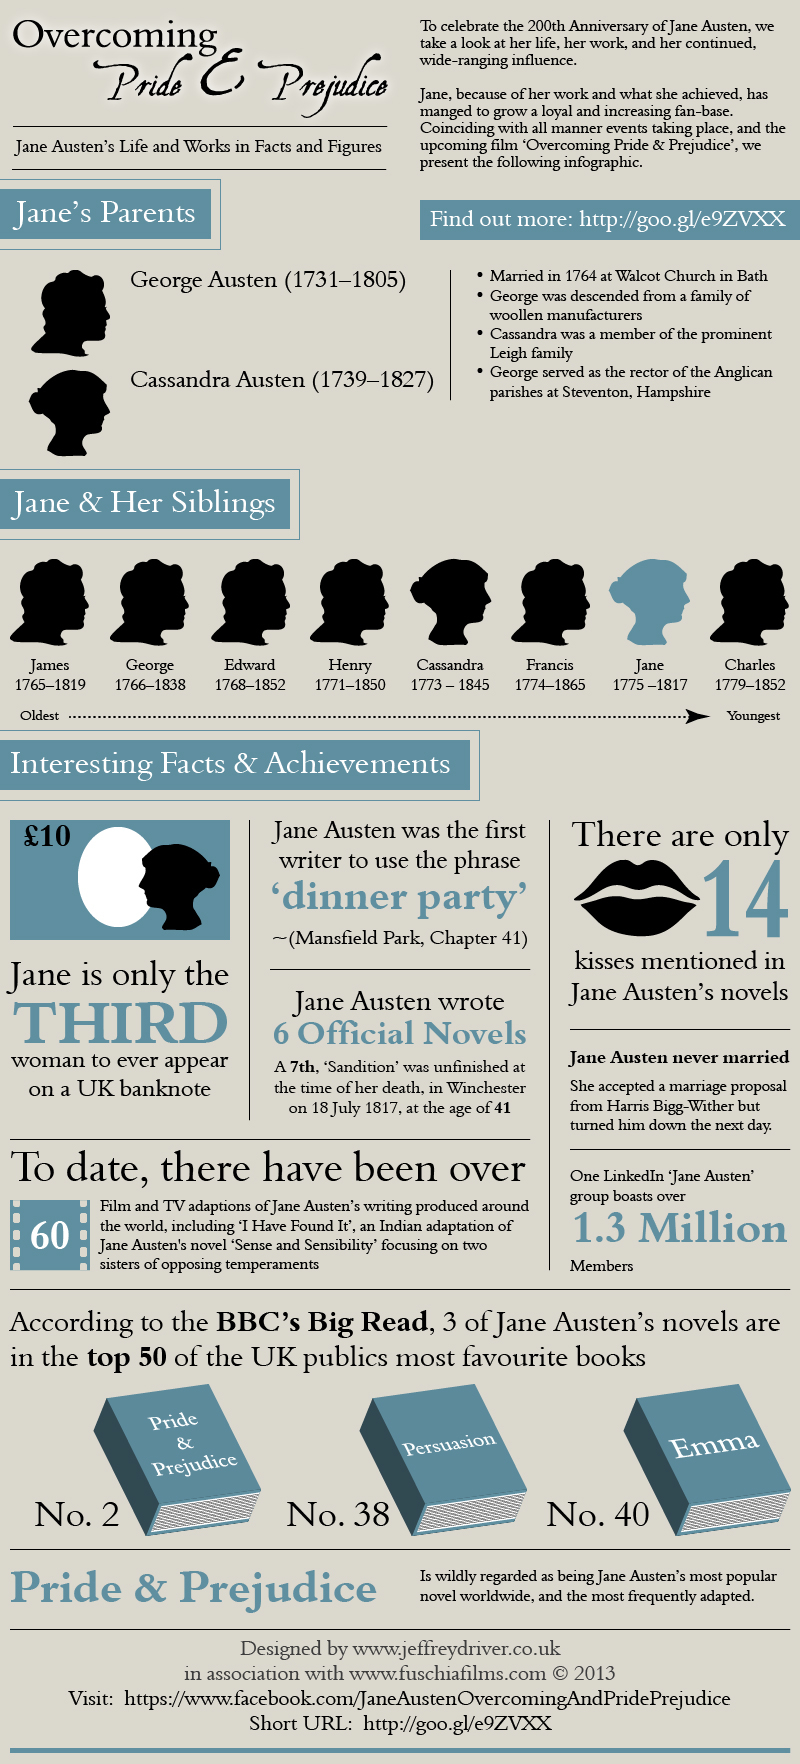 Jane Austen, Overcoming Pride & Prejudice - Infographic